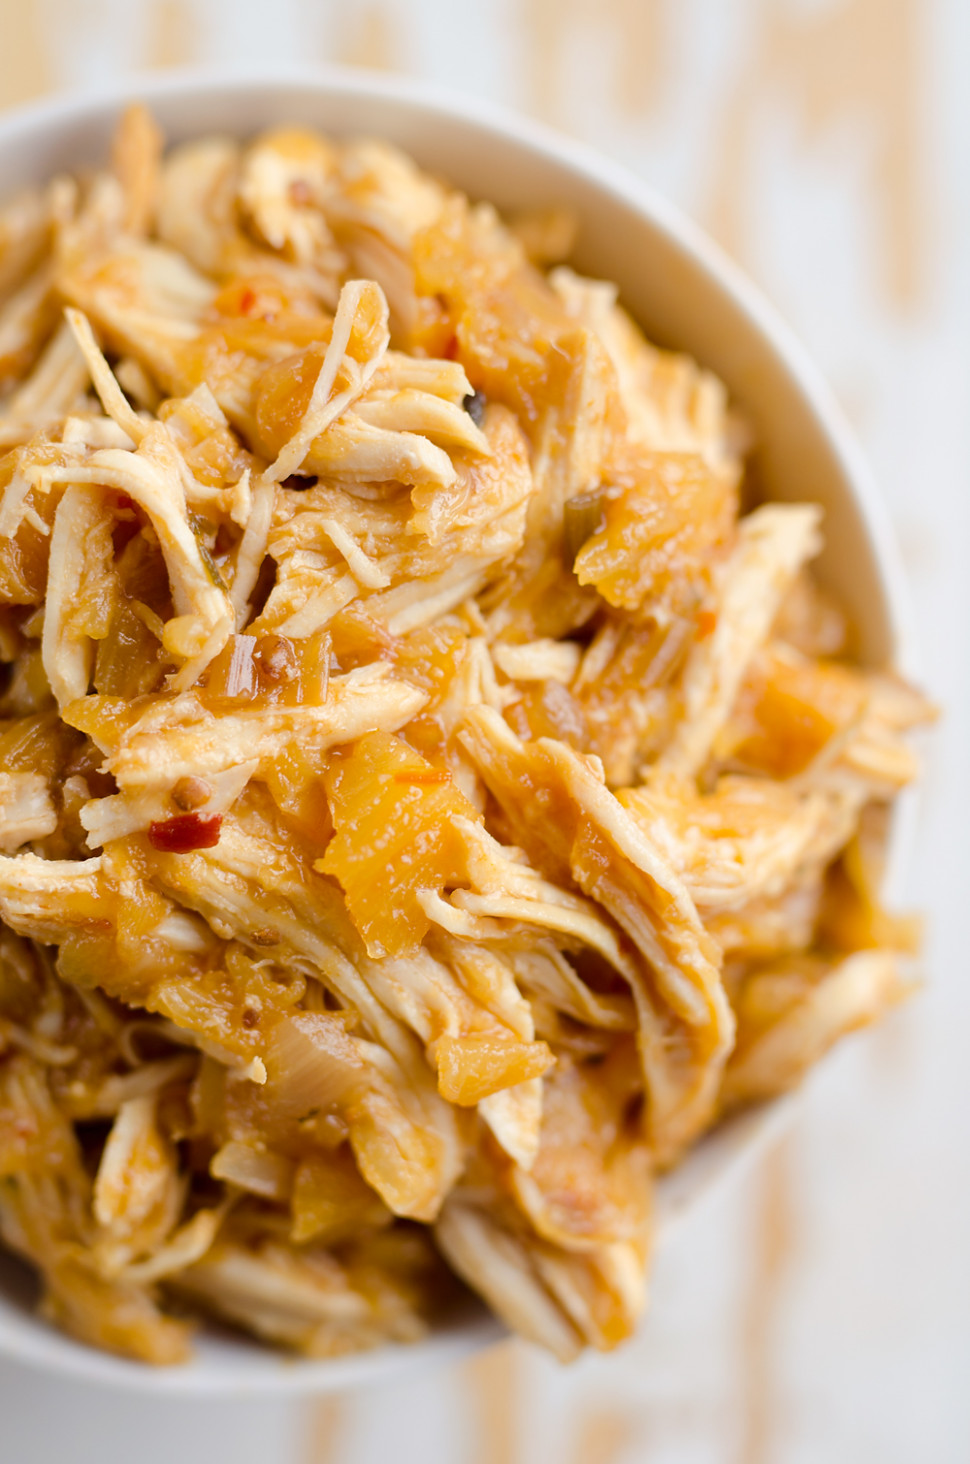 15 Healthy Chicken Recipes in a Pressure Cooker or Crock Pot - recipes ideas with chicken